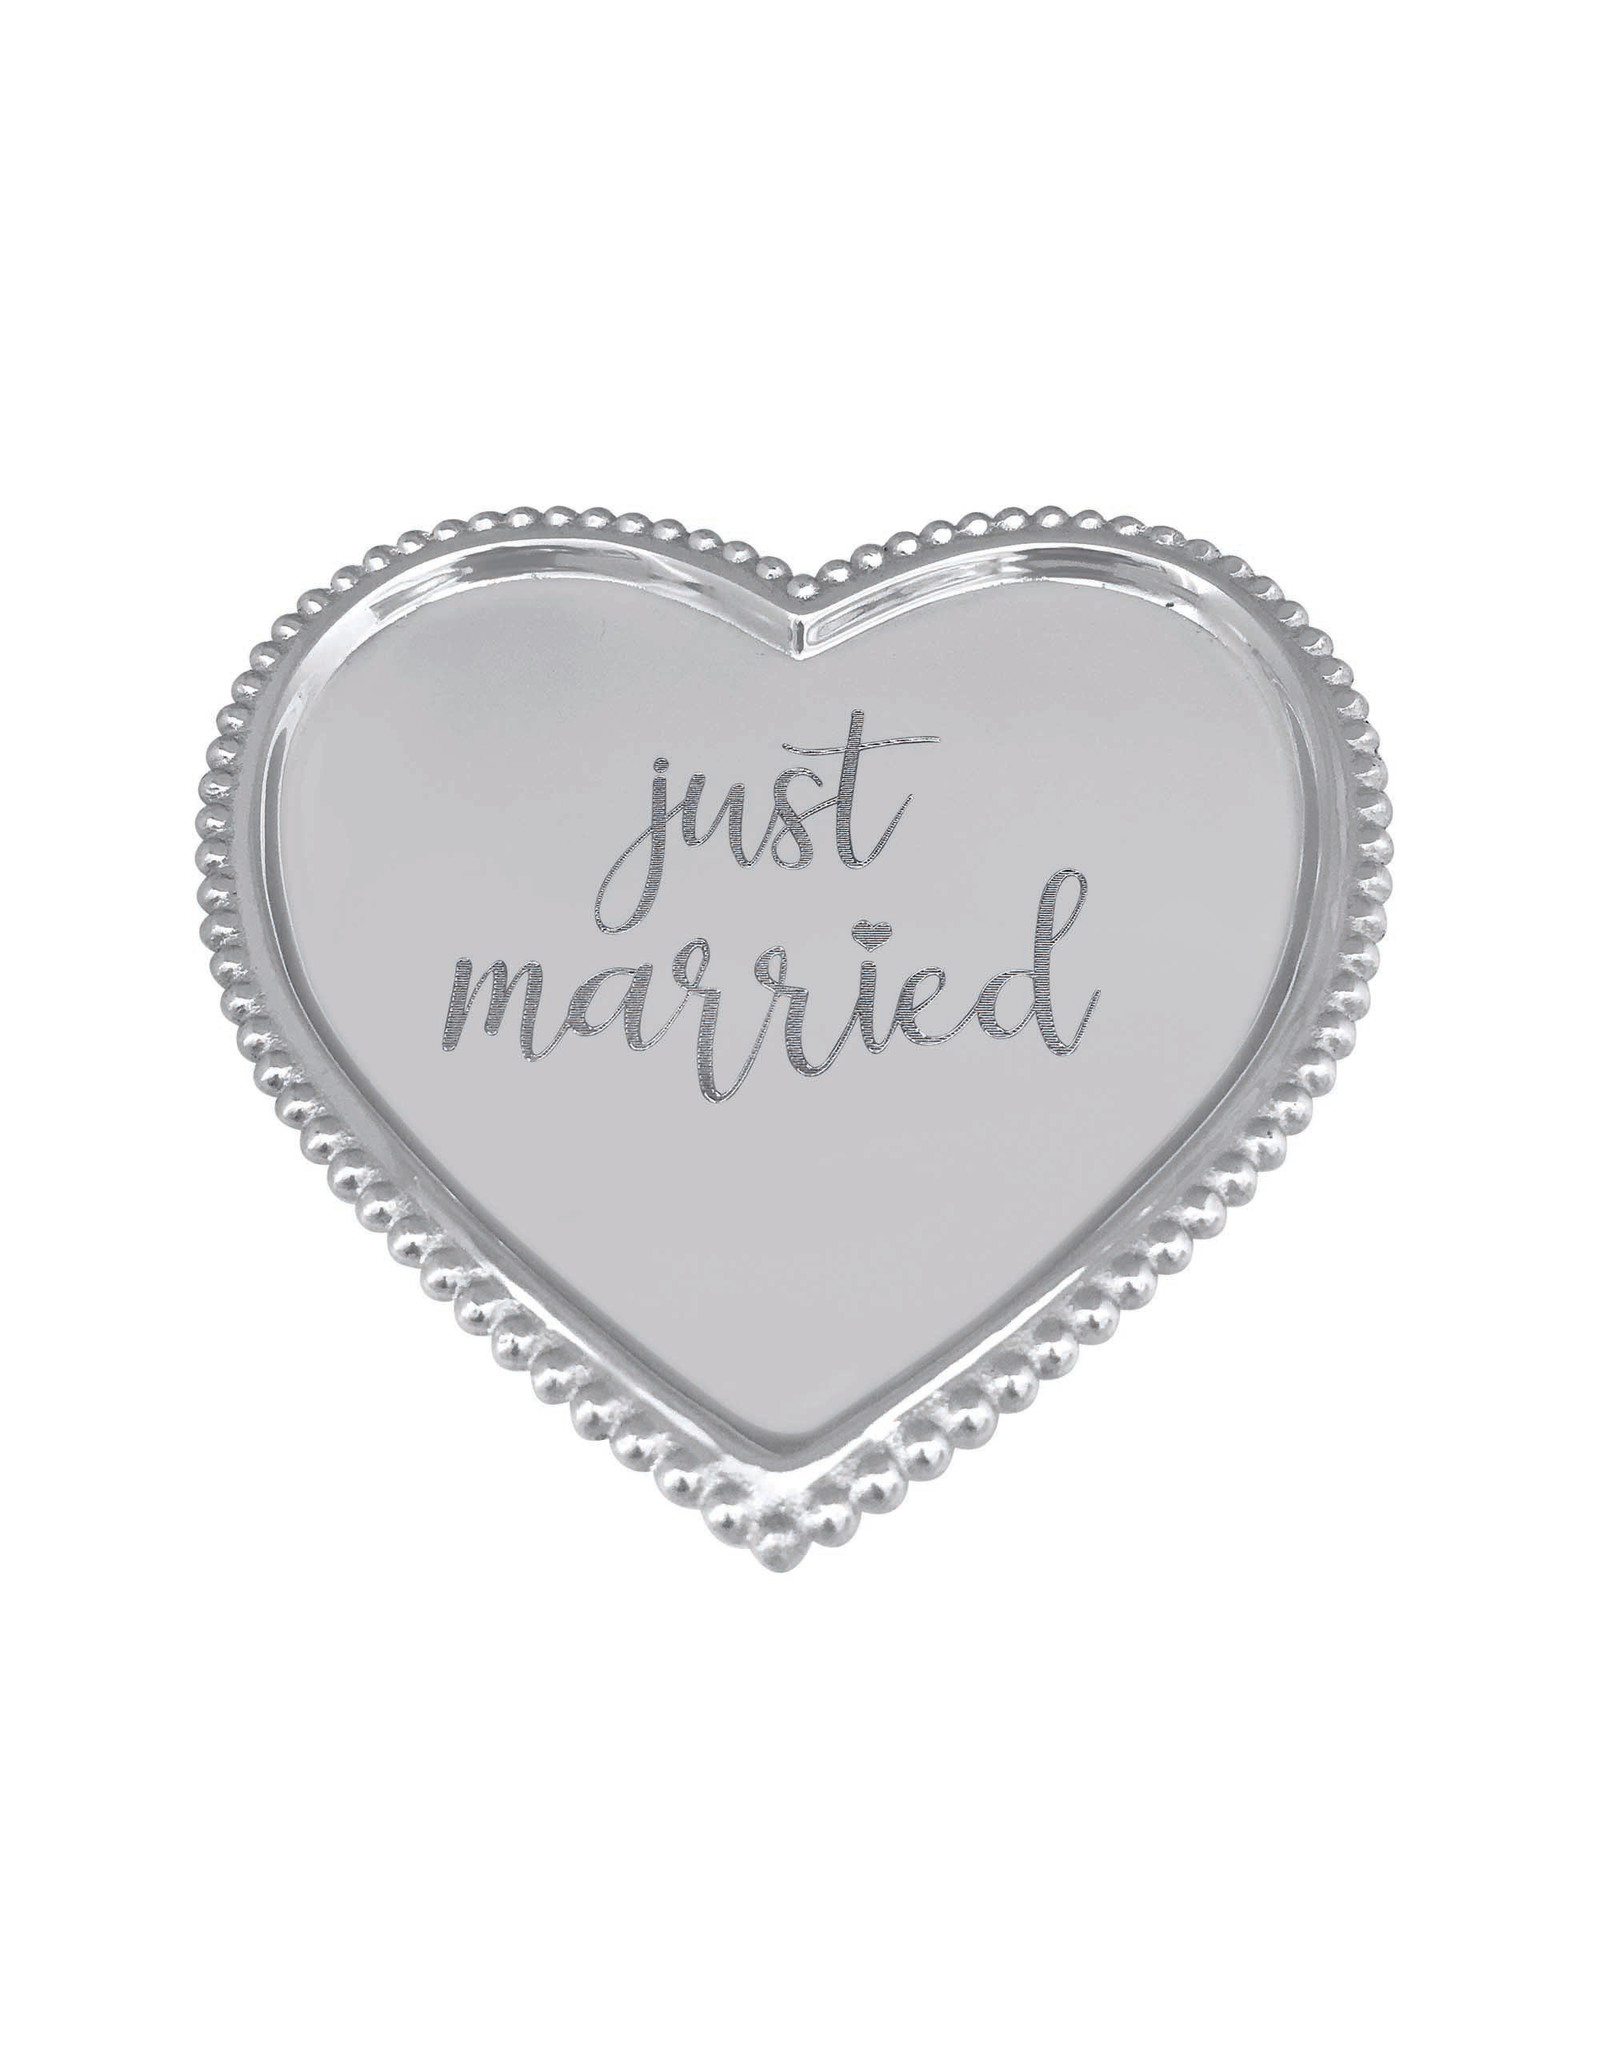 Mariposa Heart Statement Tray Just Married